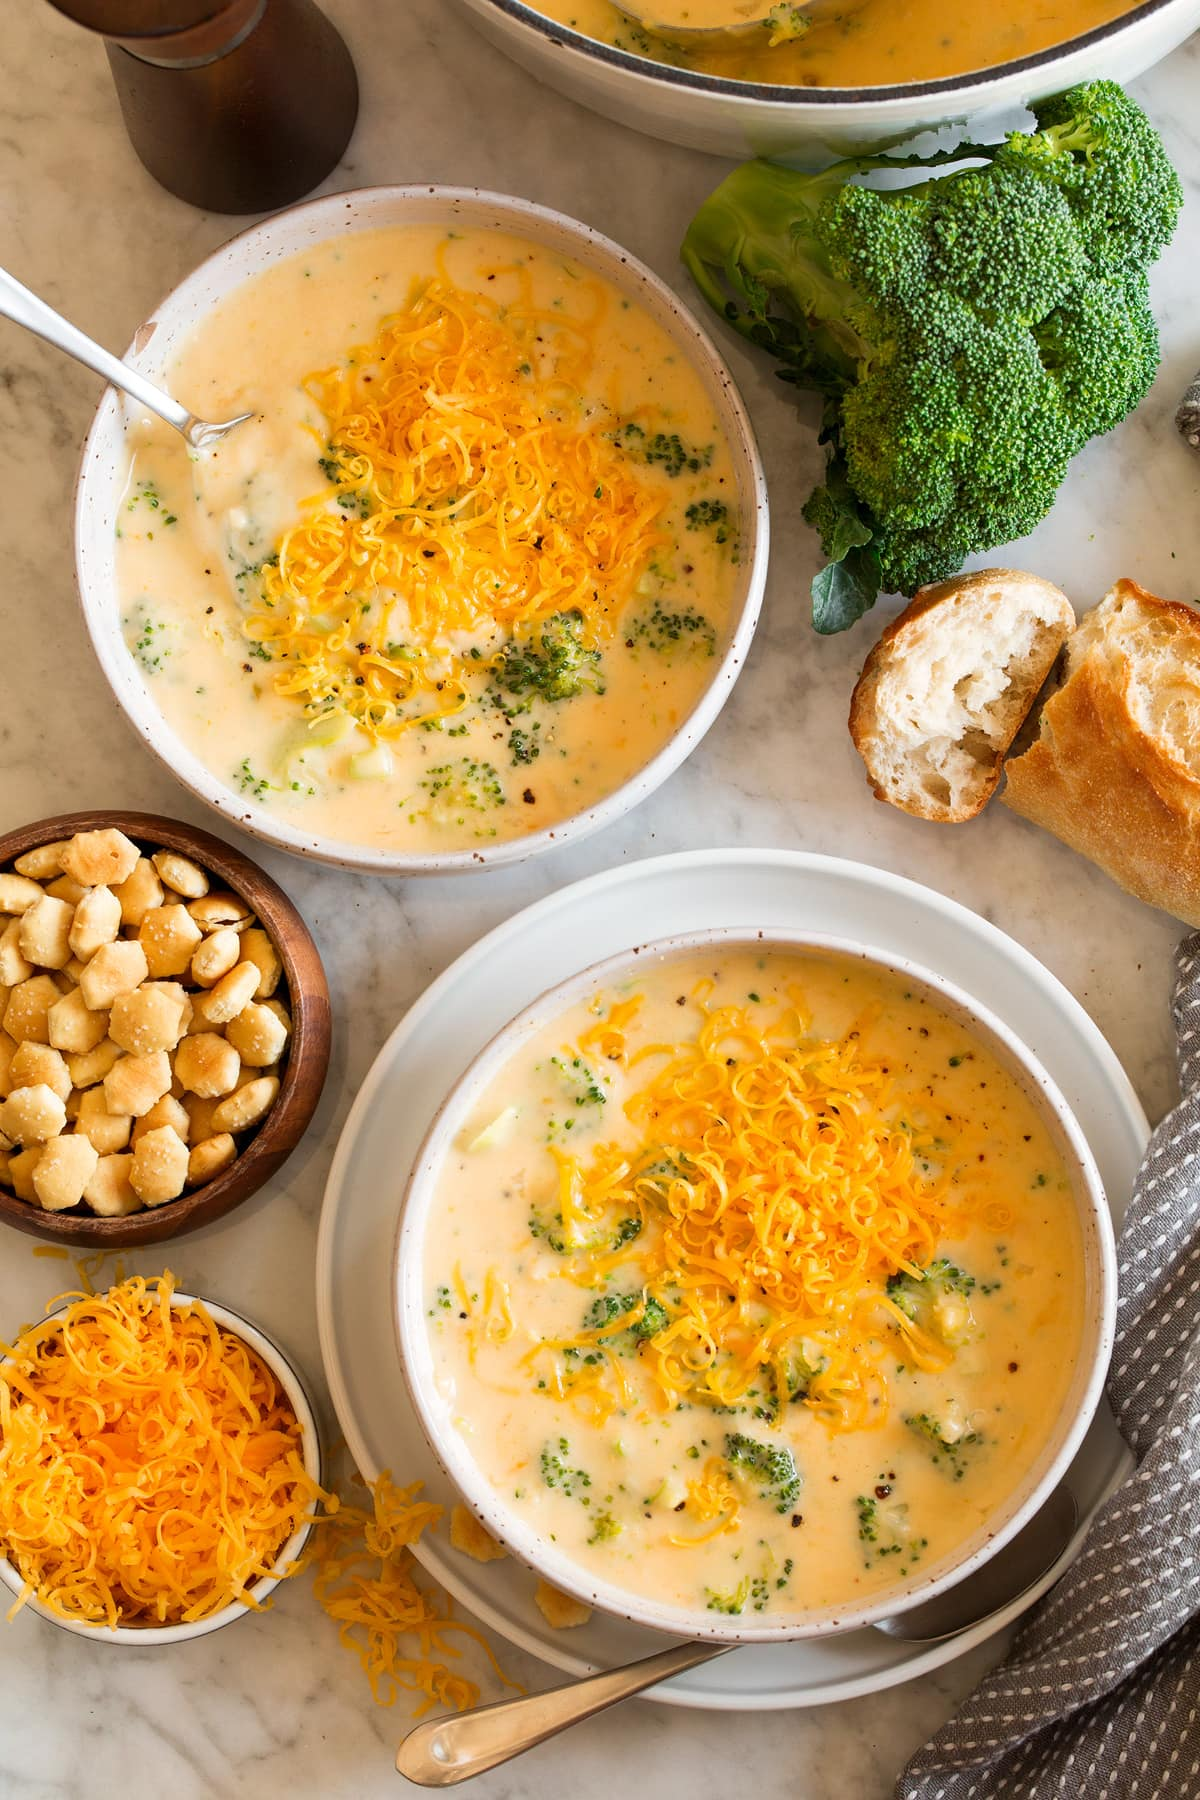 Image overhead of two servings of broccoli cheese soup in serving bowls. Crackers, broccoli, bread and cheese are shown to the side.